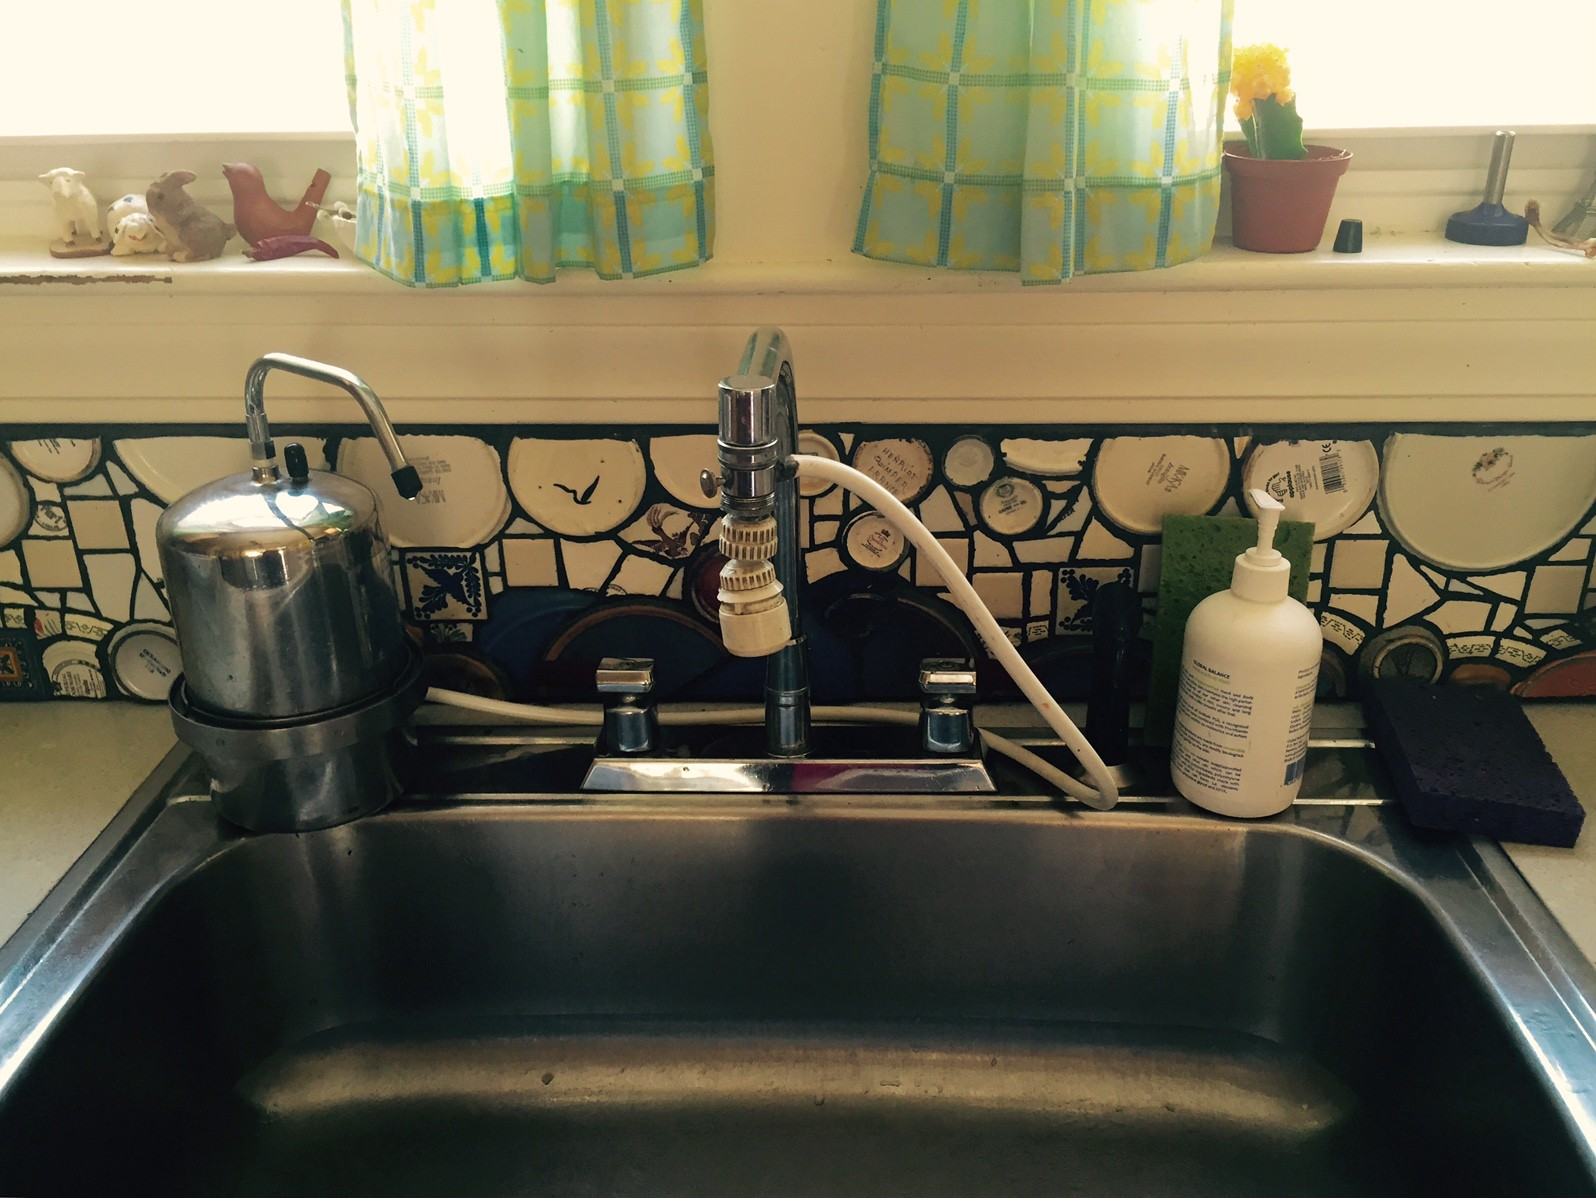 Who Taught You How to Clean the Kitchen Sink? – Virginia Berman – Medium